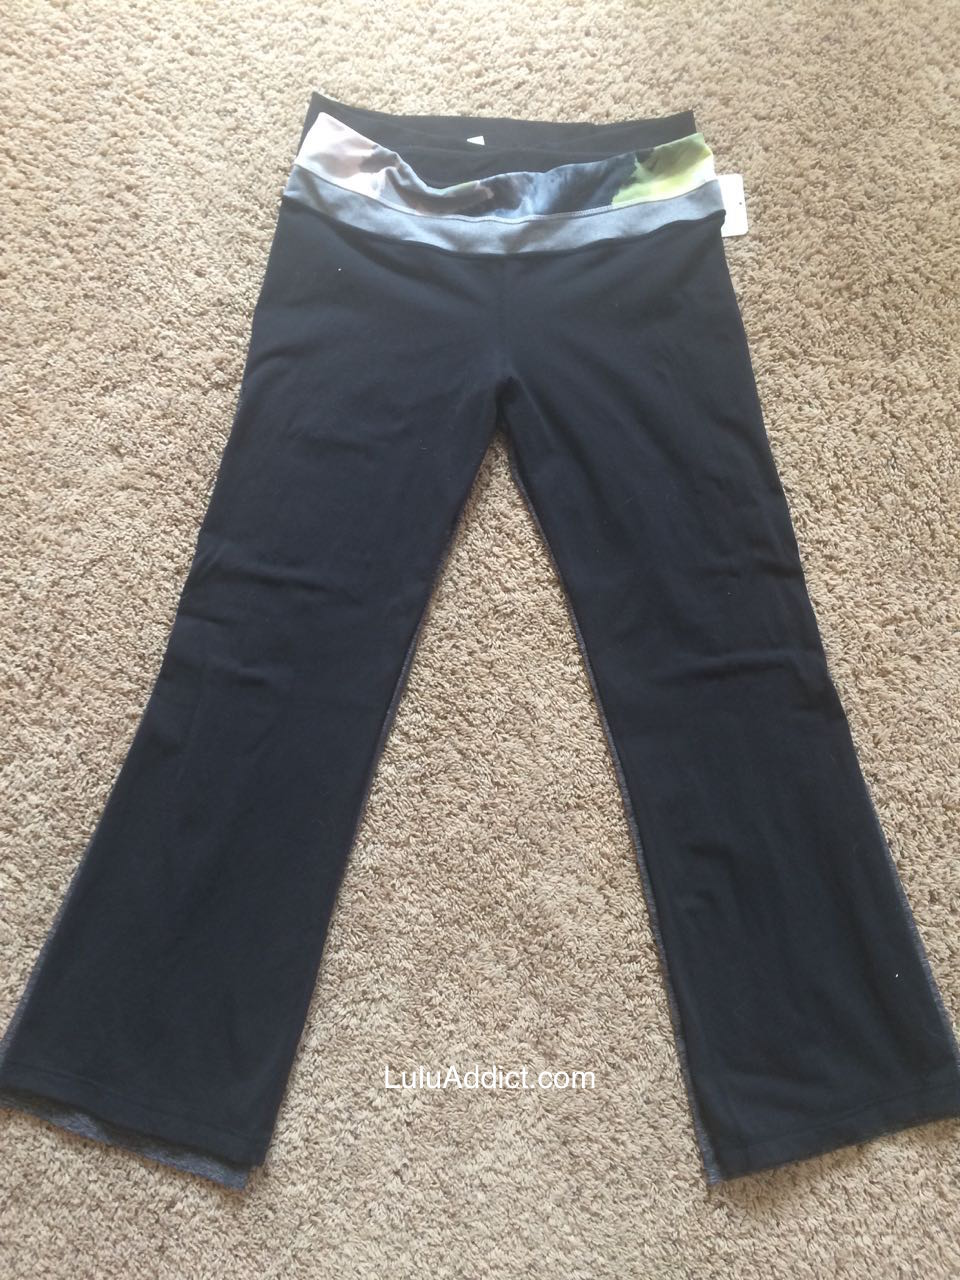 lululemon-heathered-black-grooves